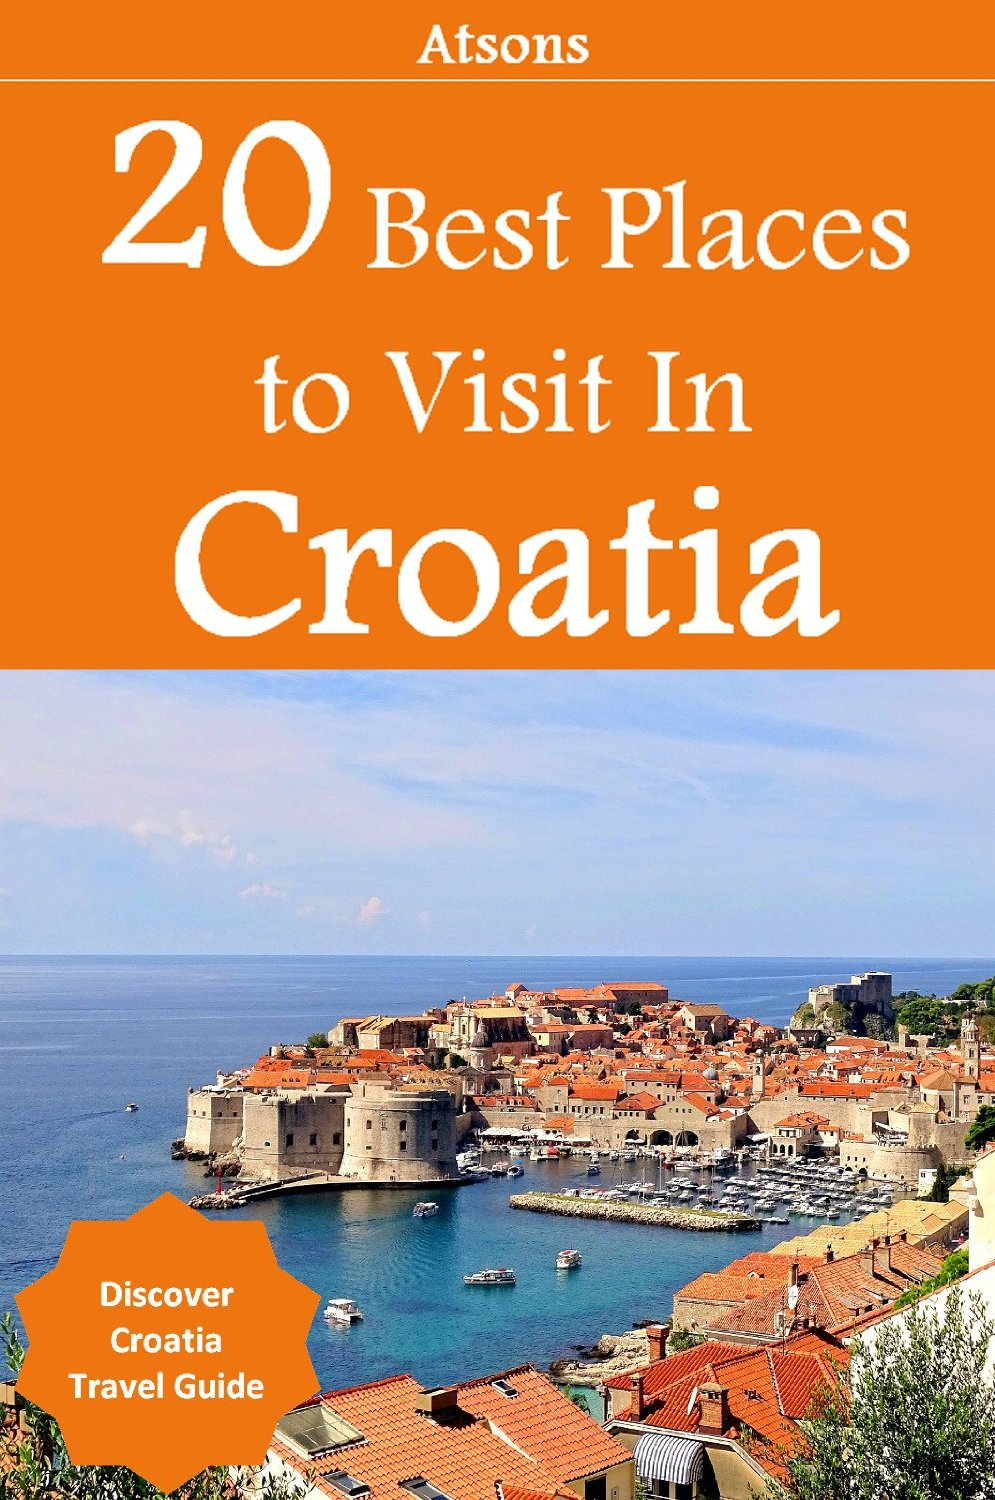 20 Best Places to Visit in Croatia - Discover Croatia Travel Guide free download